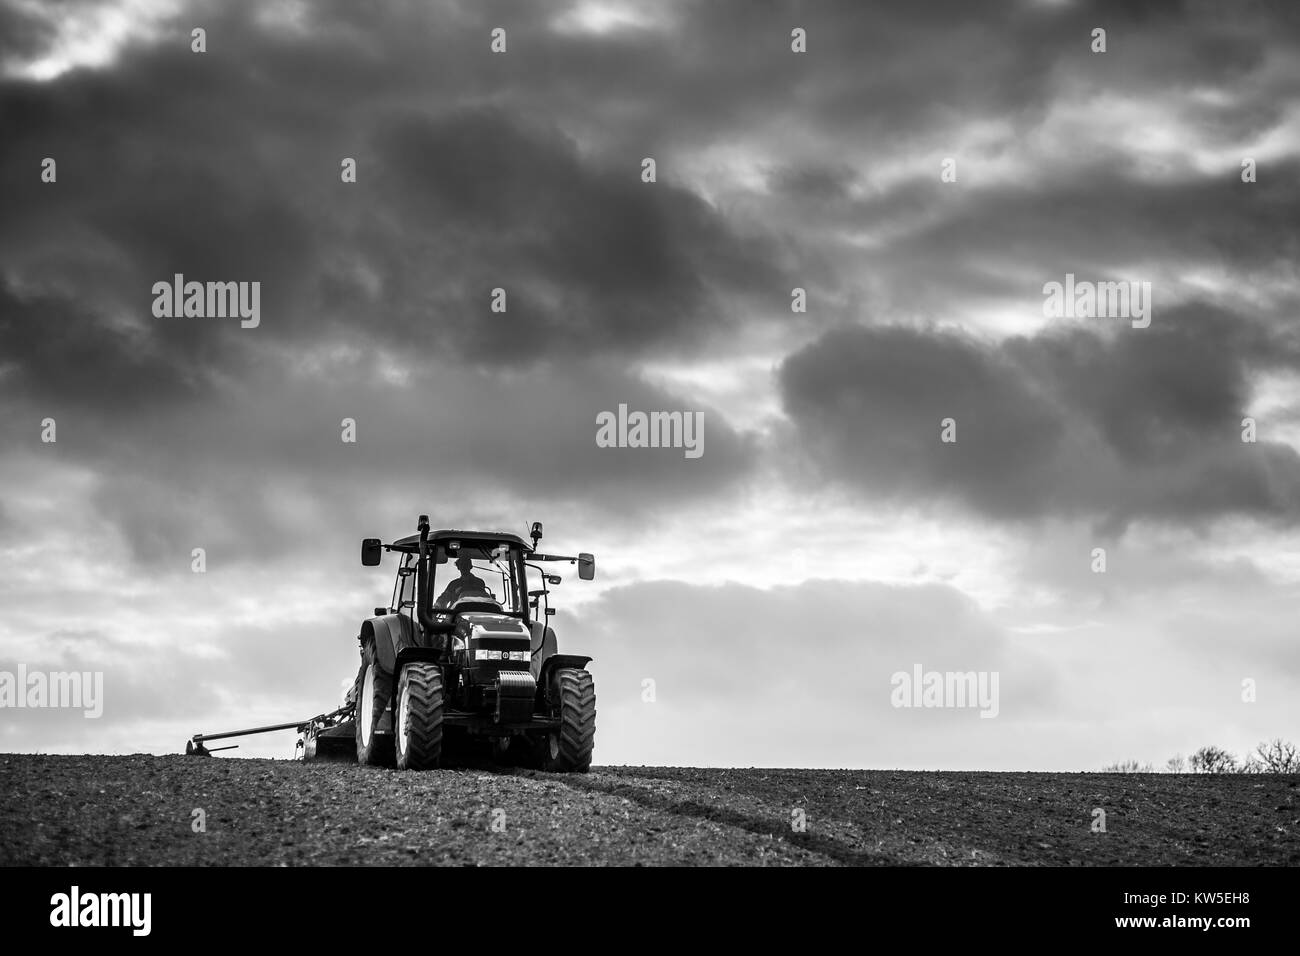 Drilling Barley in the spring, Gloucestershire, UK - Stock Image